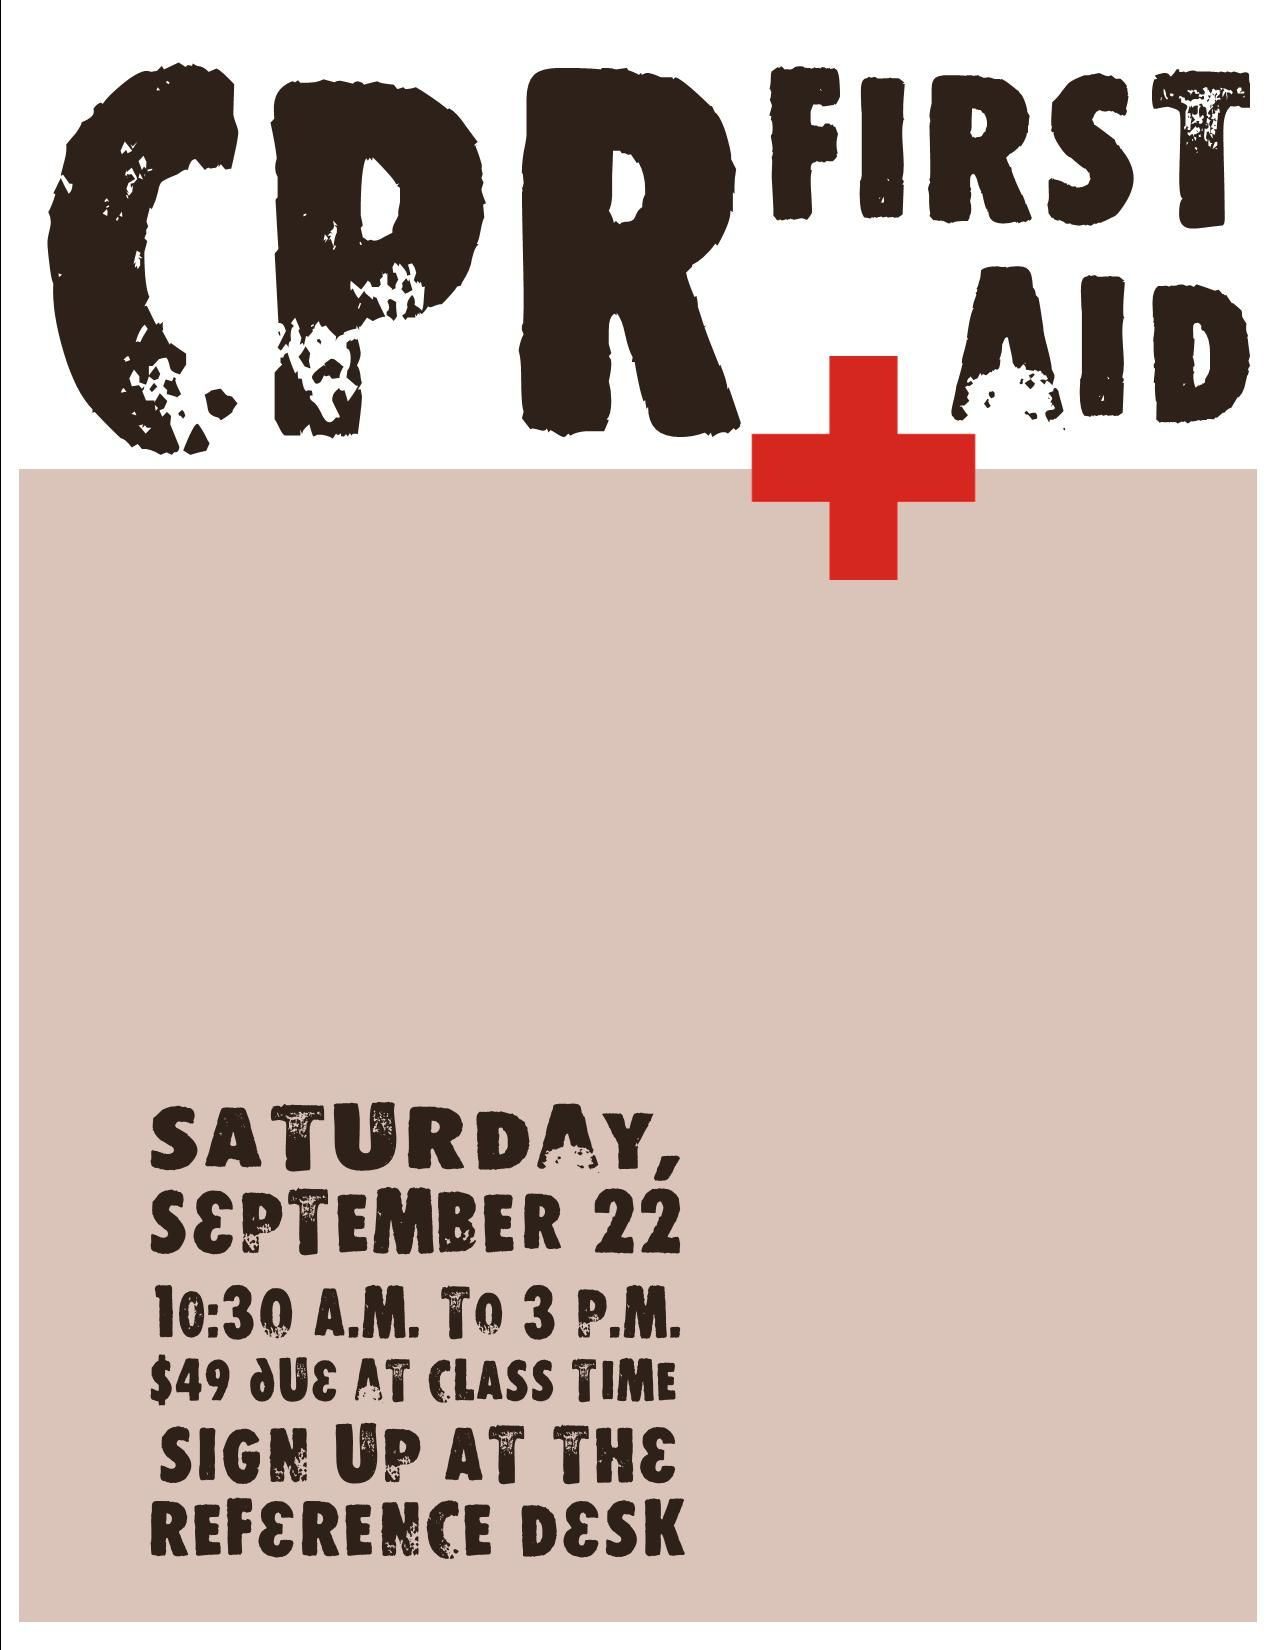 Cpr Flyer Marketing Idea Love This Or Even A Blood Drive